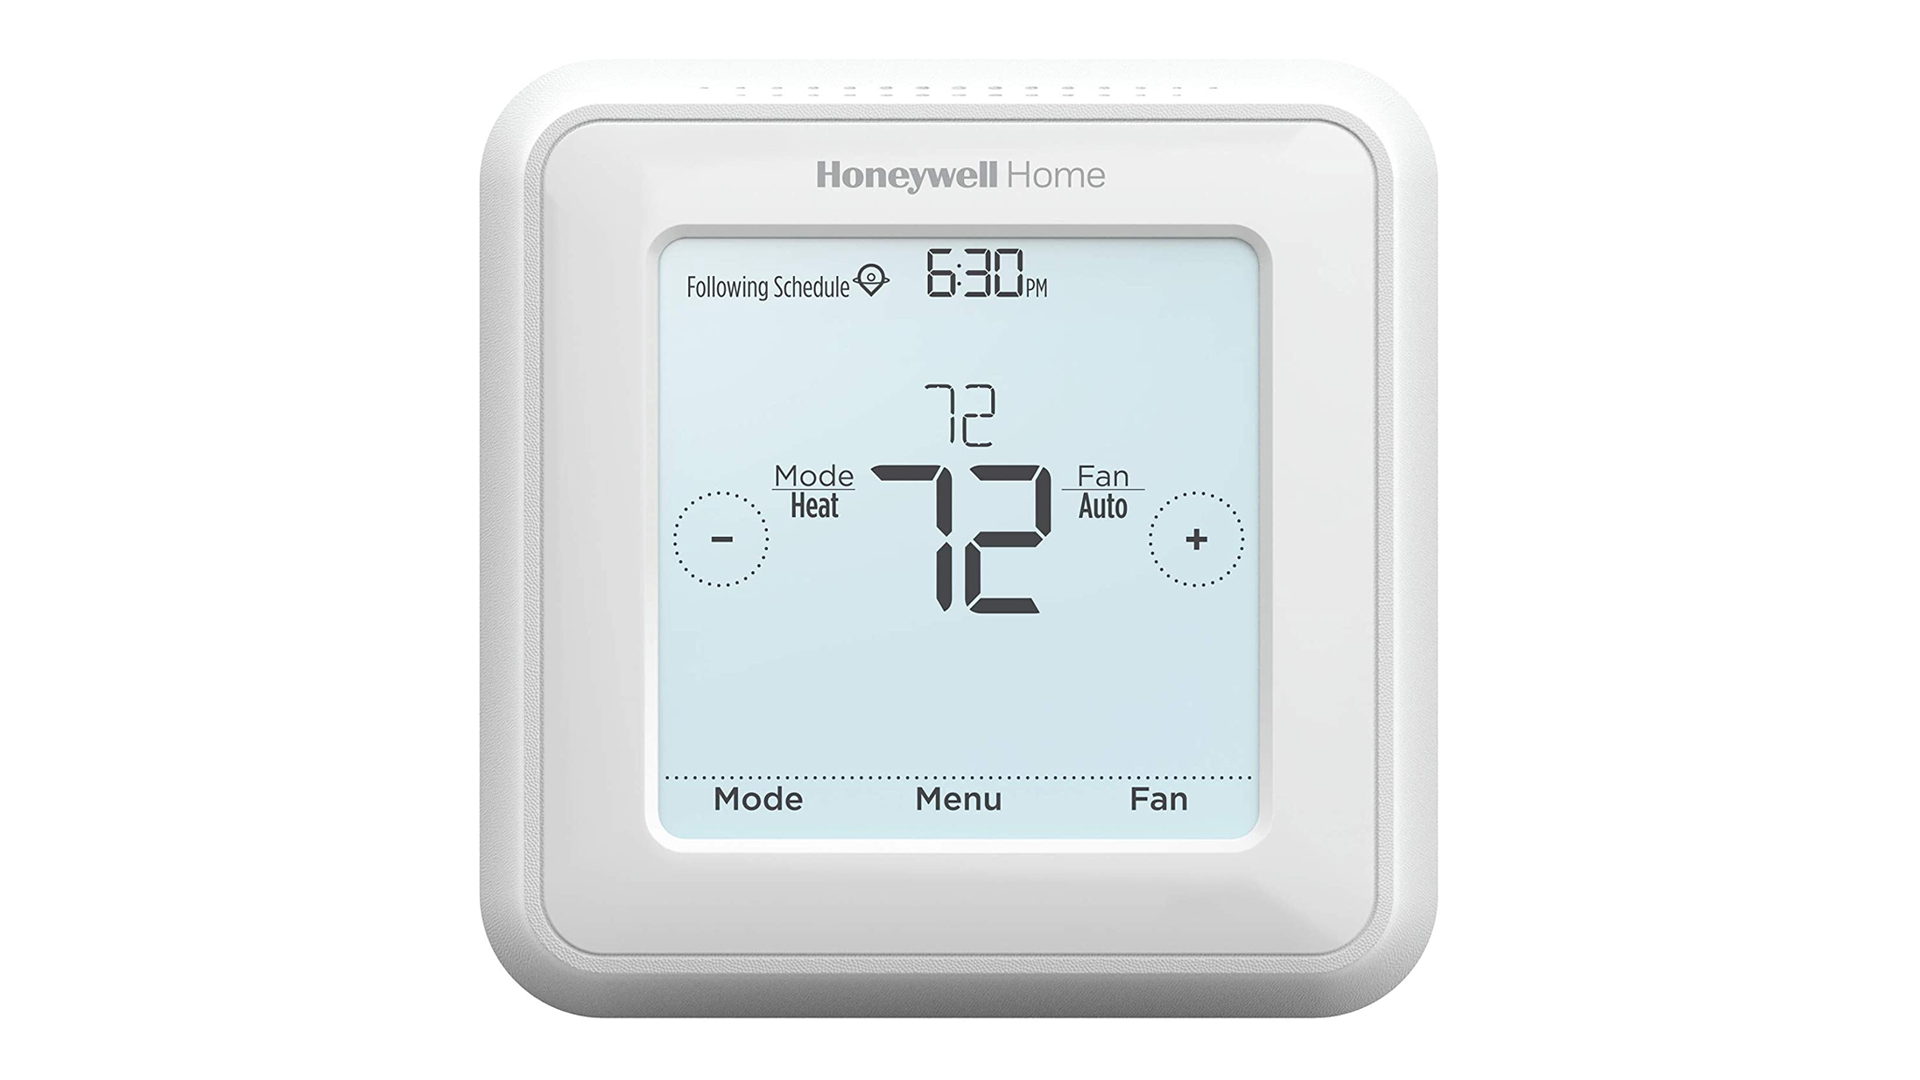 A photo of the Honeywell 7-day touchscreen thermostat.